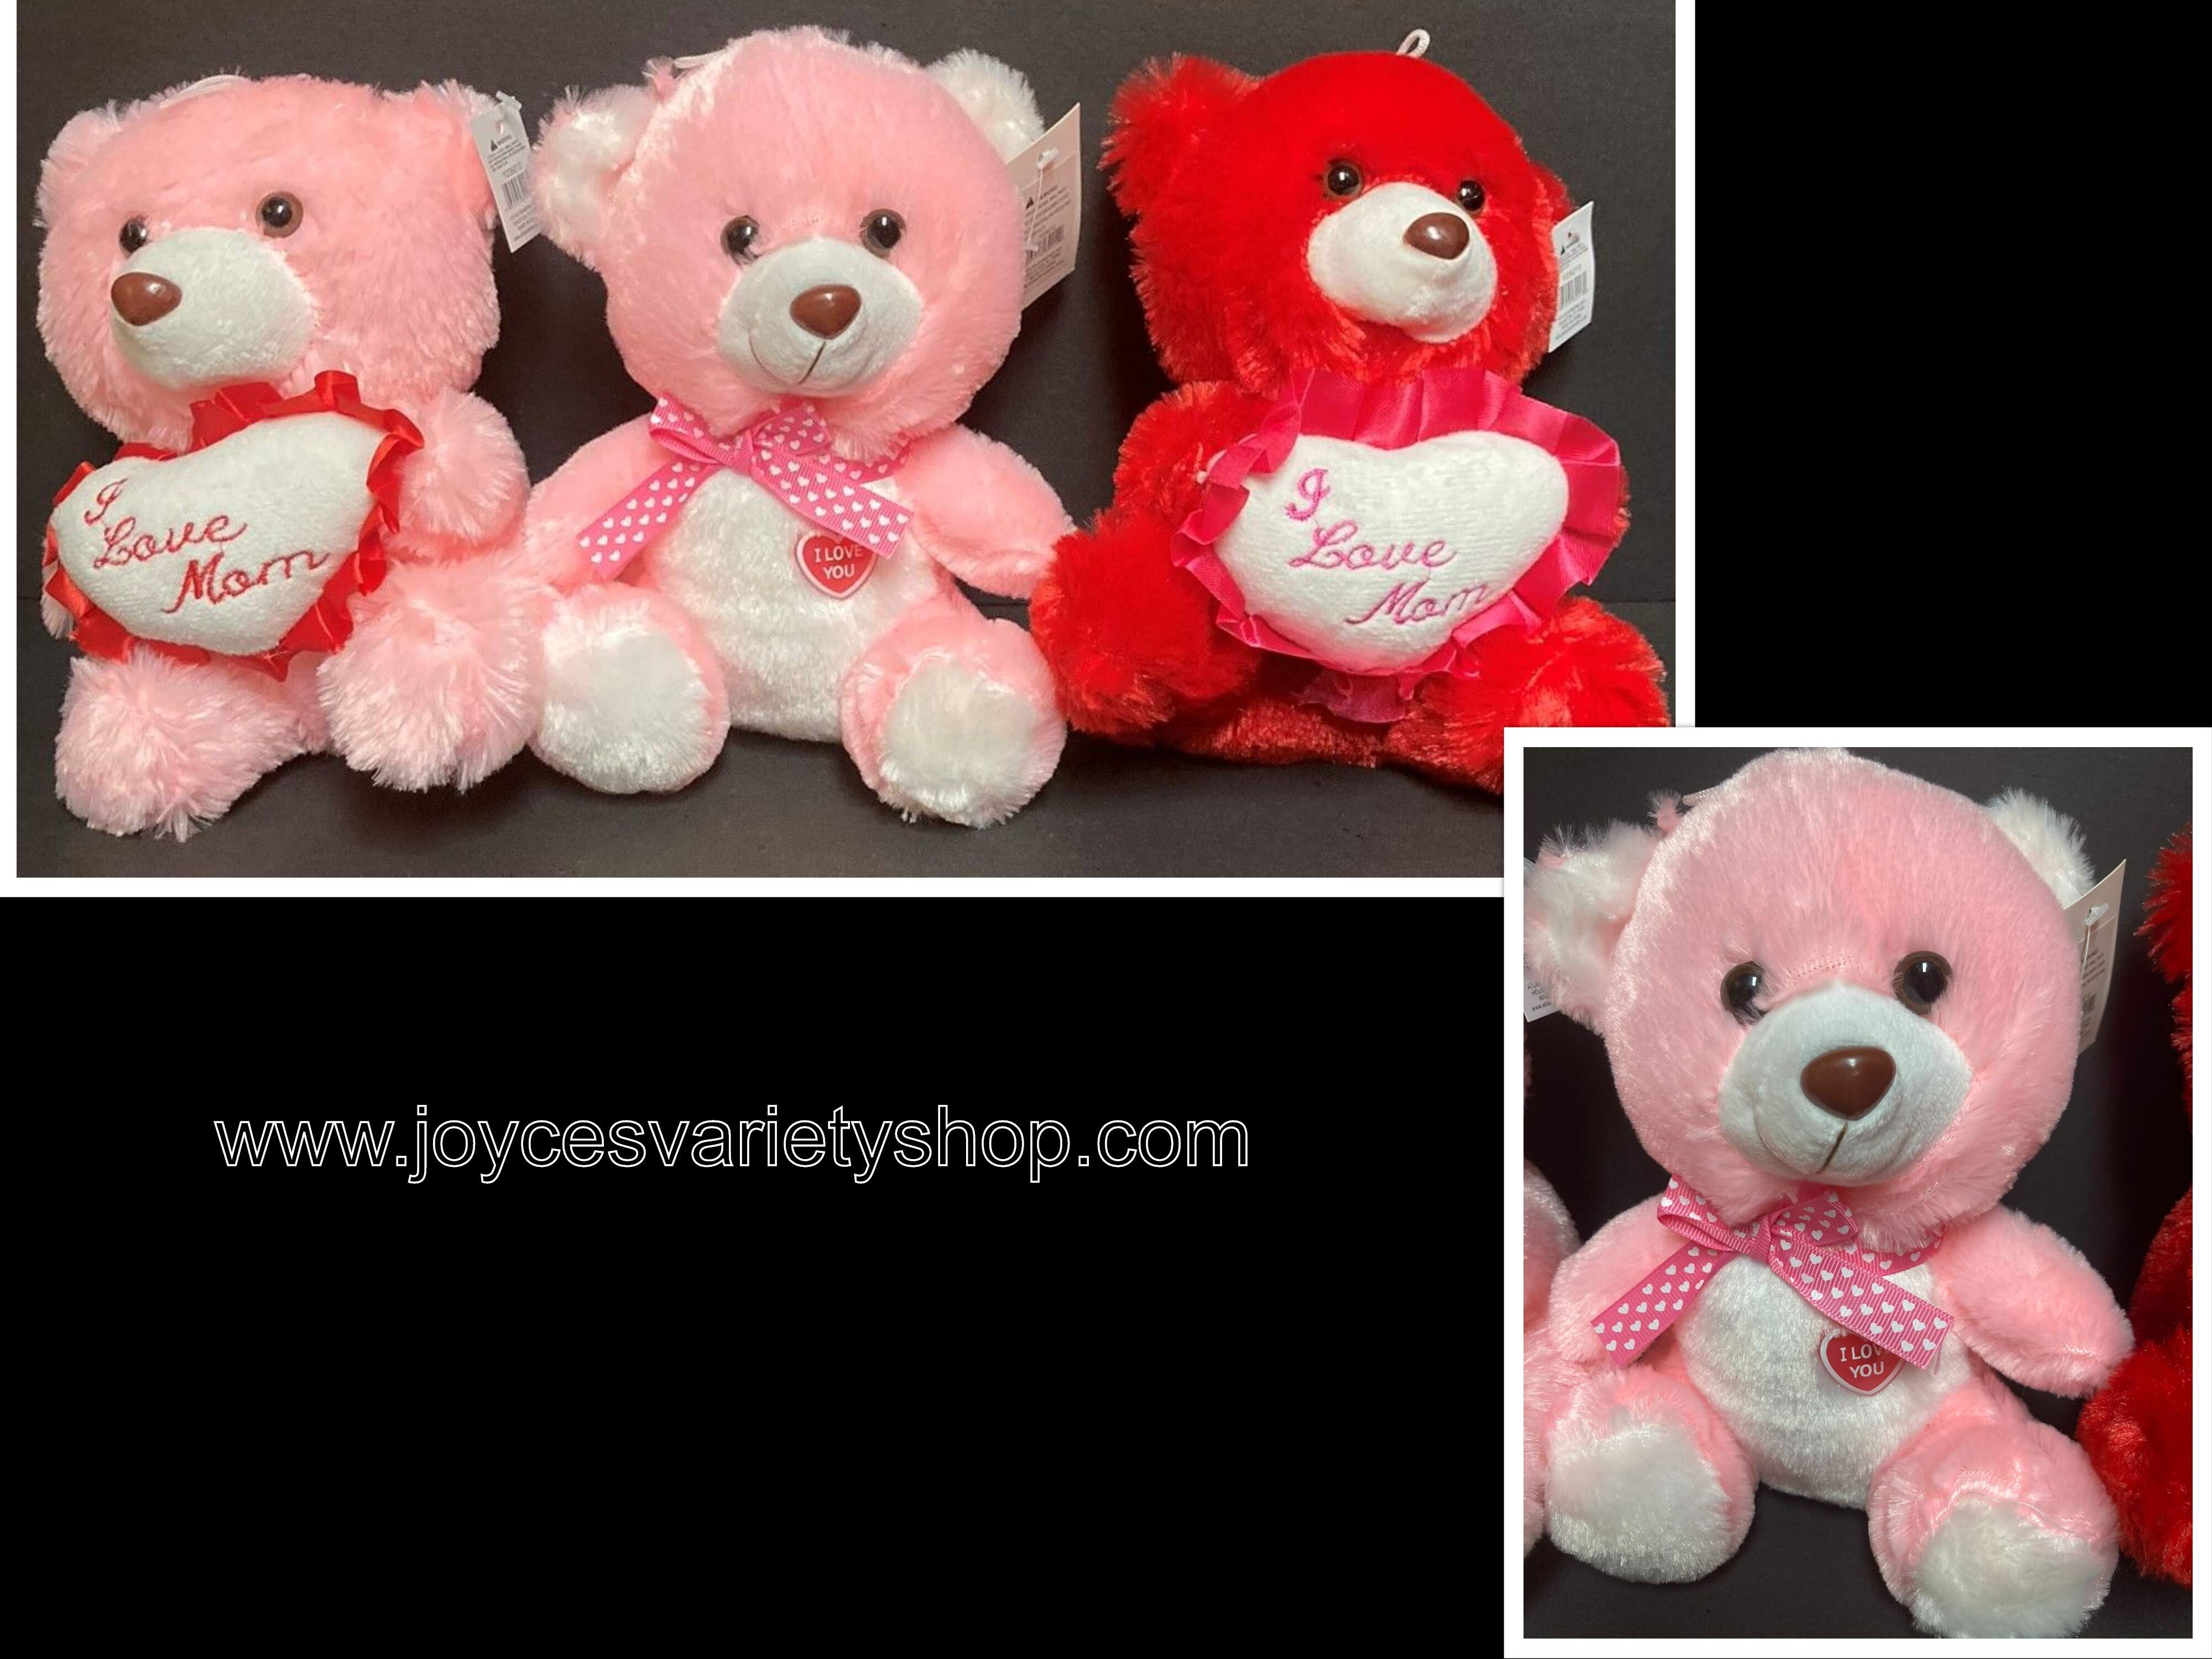 Super Soft Plush Teddy Bear Heart Love Mom Many Styles & Colors 8""